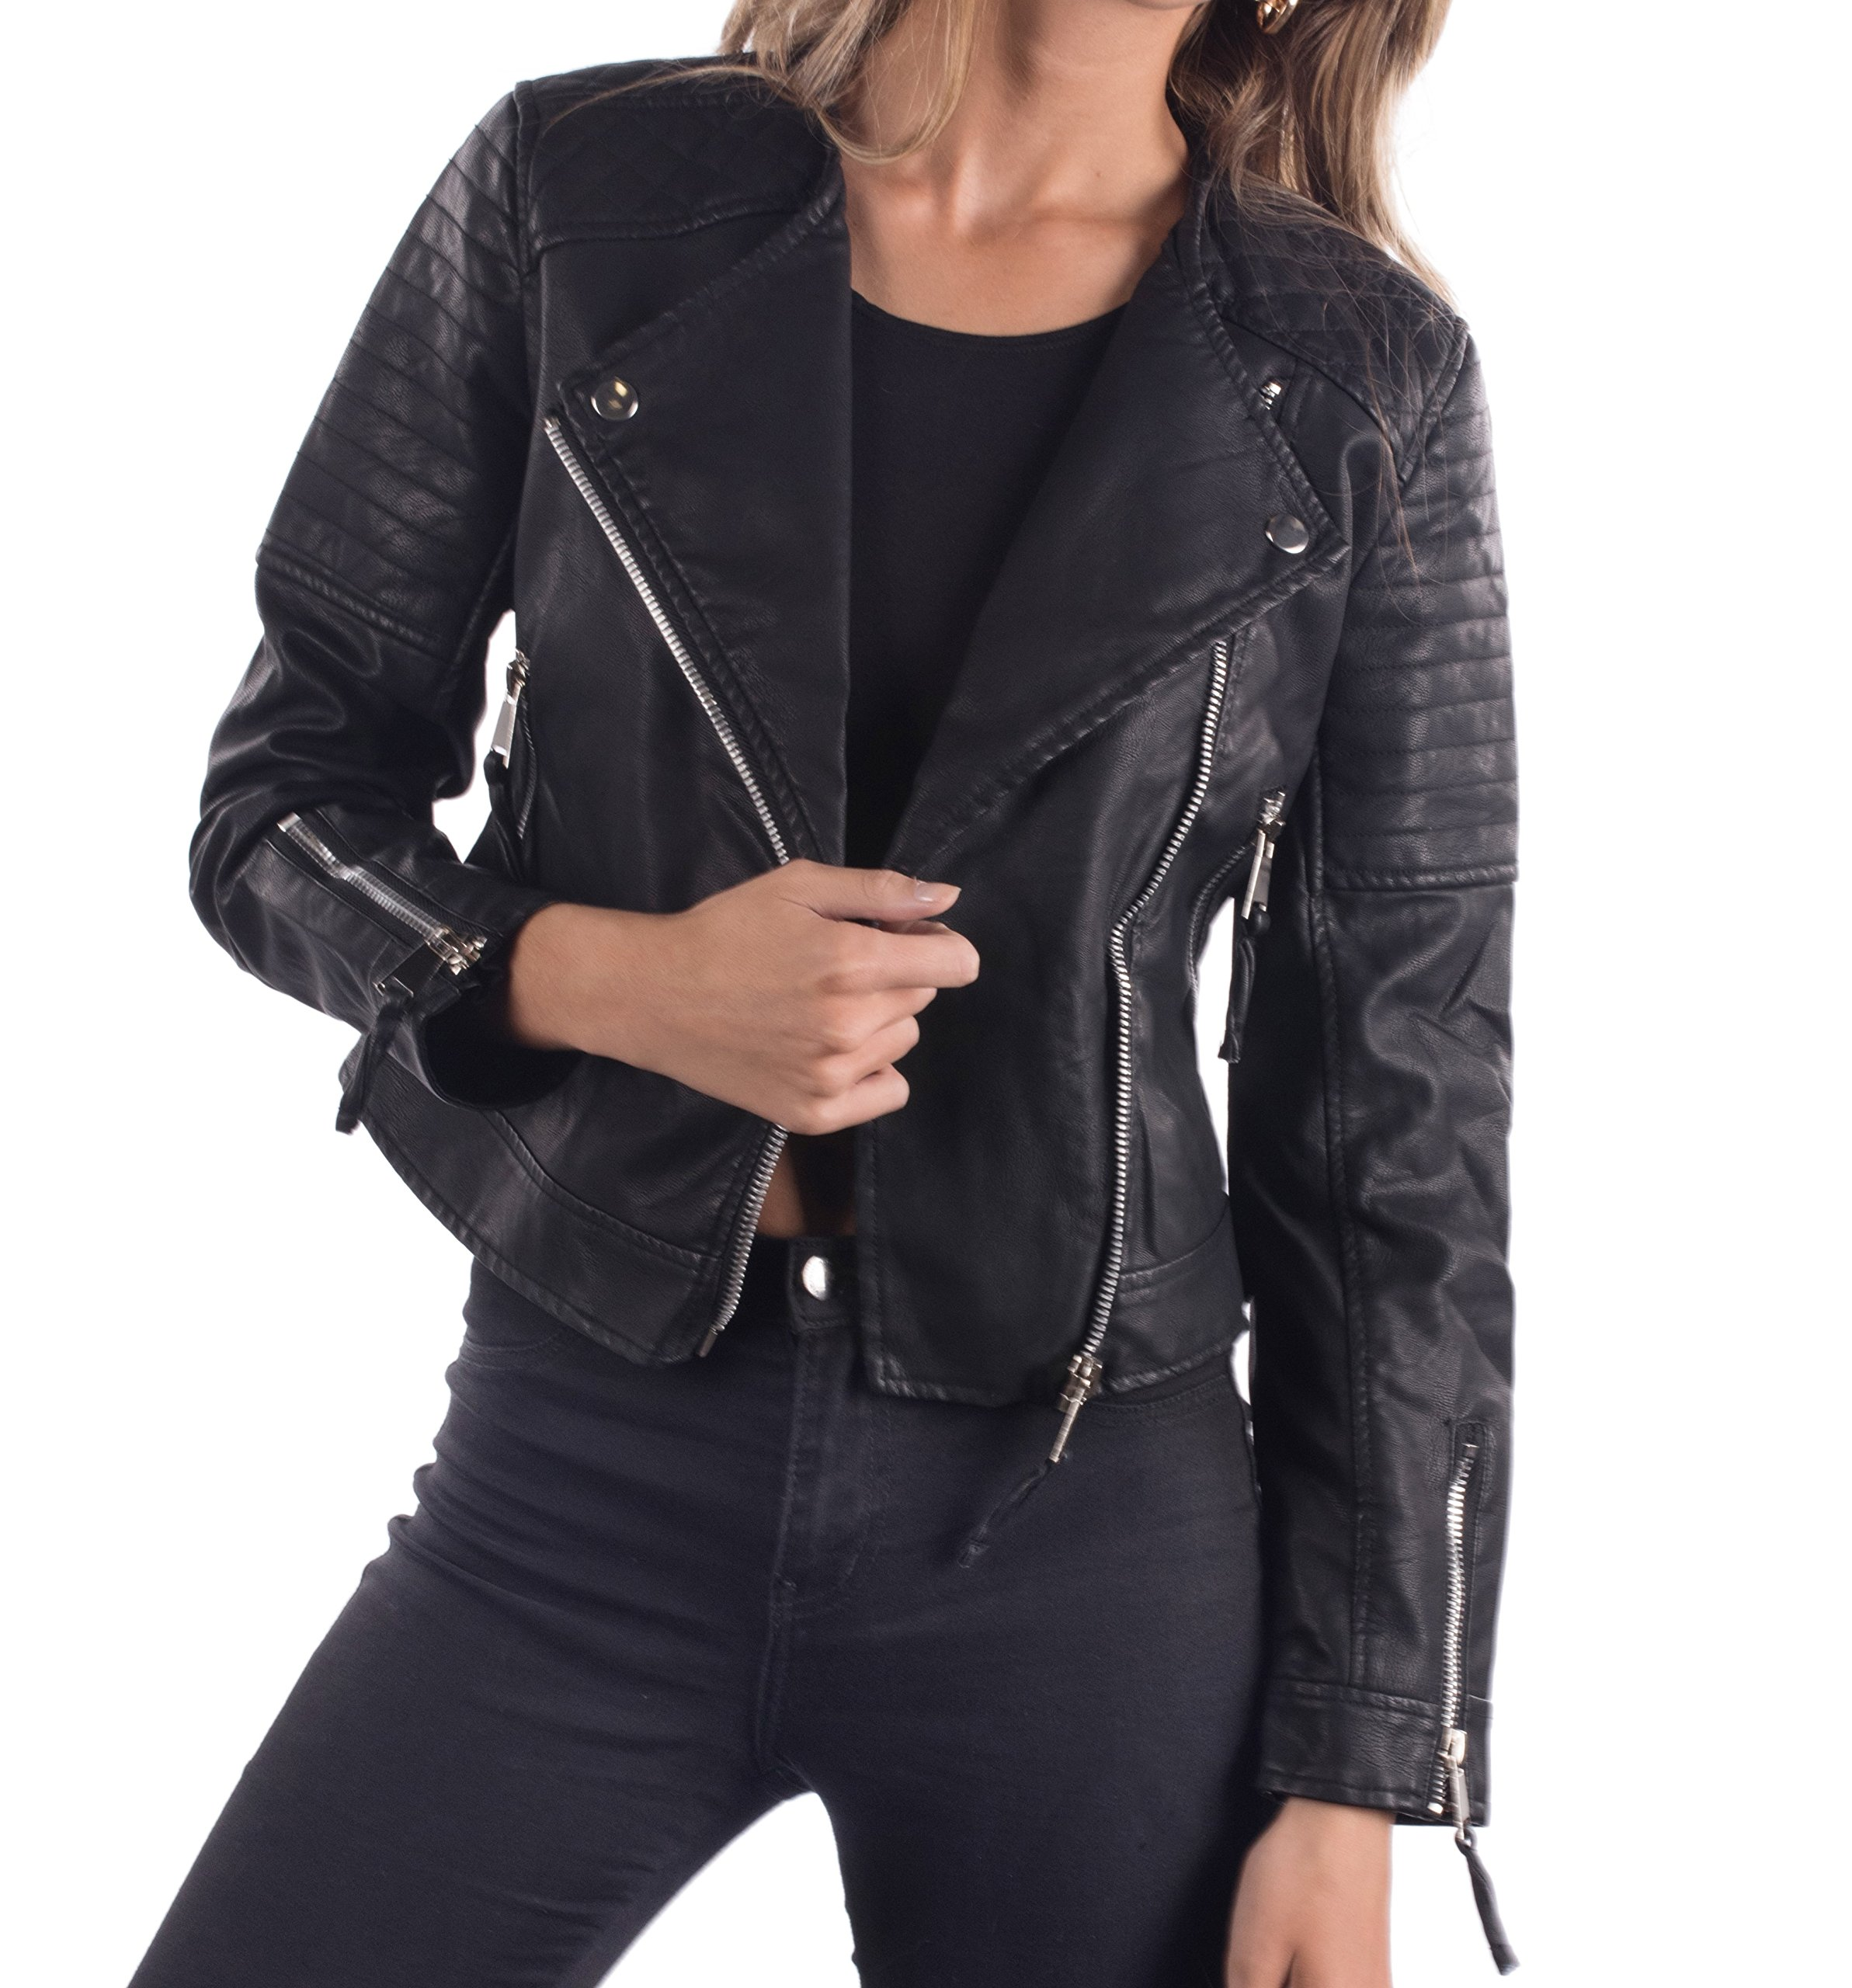 Philomena Petti Ladies Faux Leather Motorcycle Jacket, Womens PU Riding Biker Jacket With Padded Shoulders,Black - No Collar & Padded Shoulders,Large by Philomena Petti